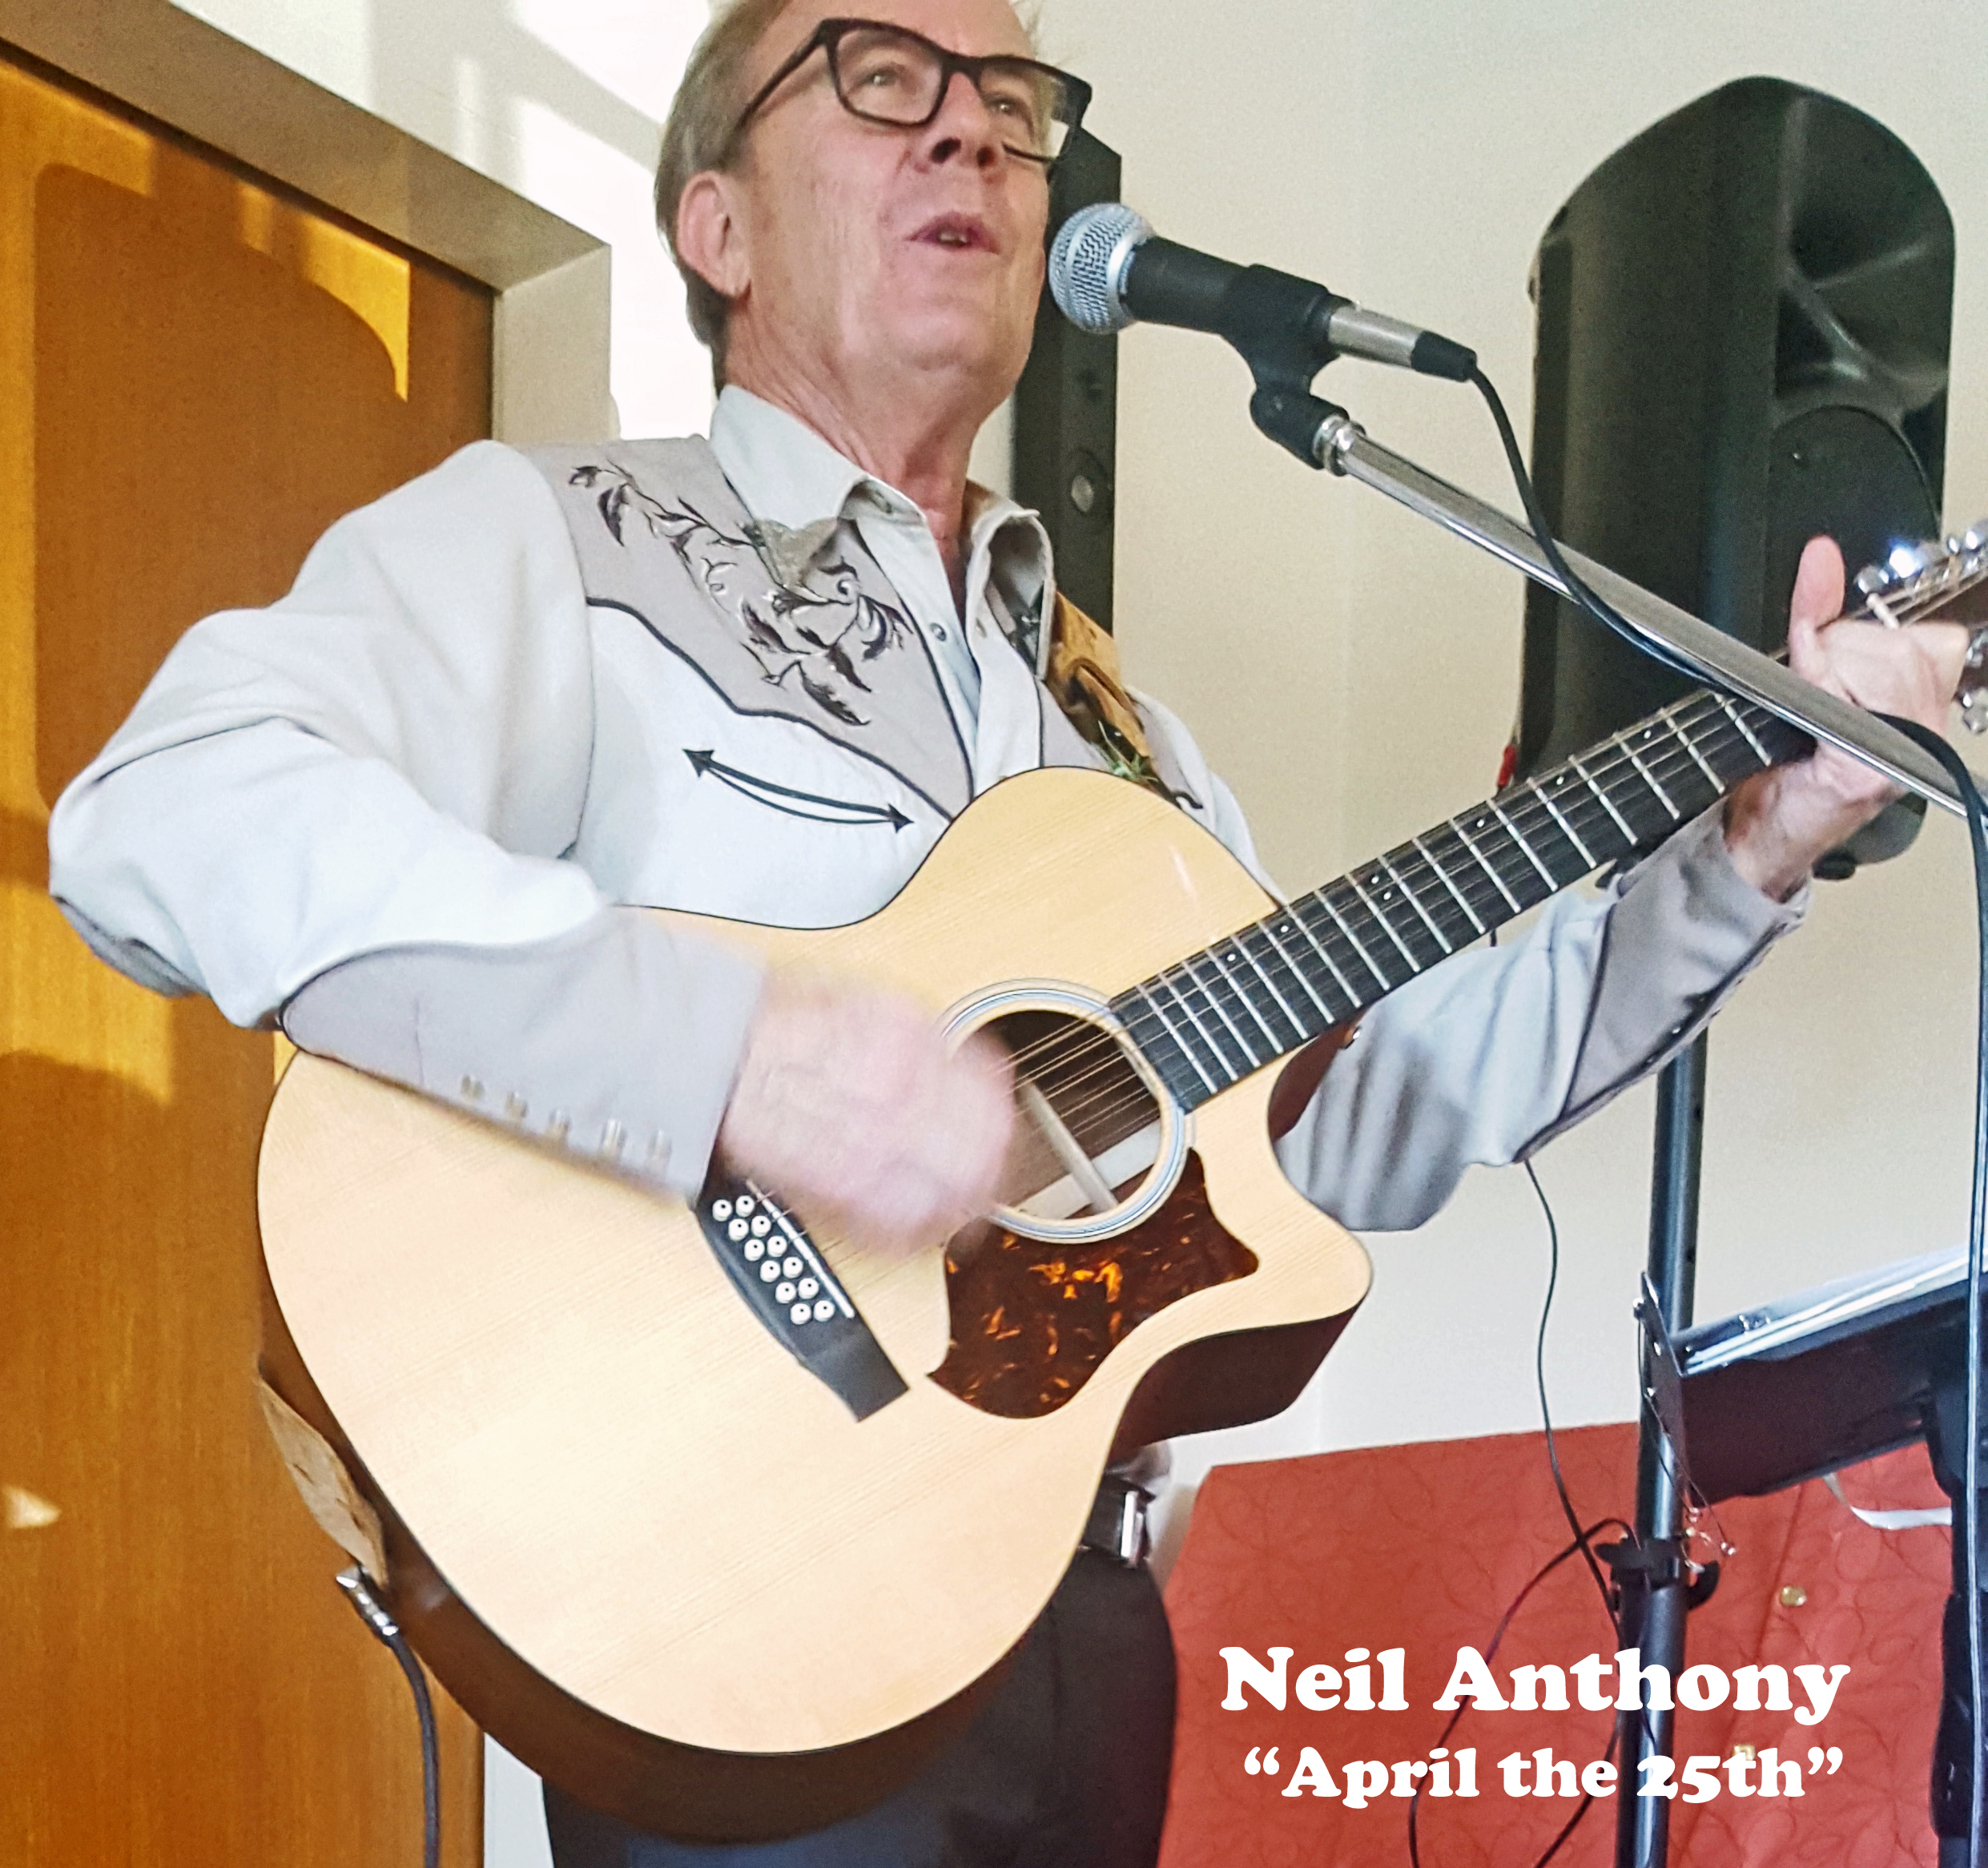 NEIL ANTHONY